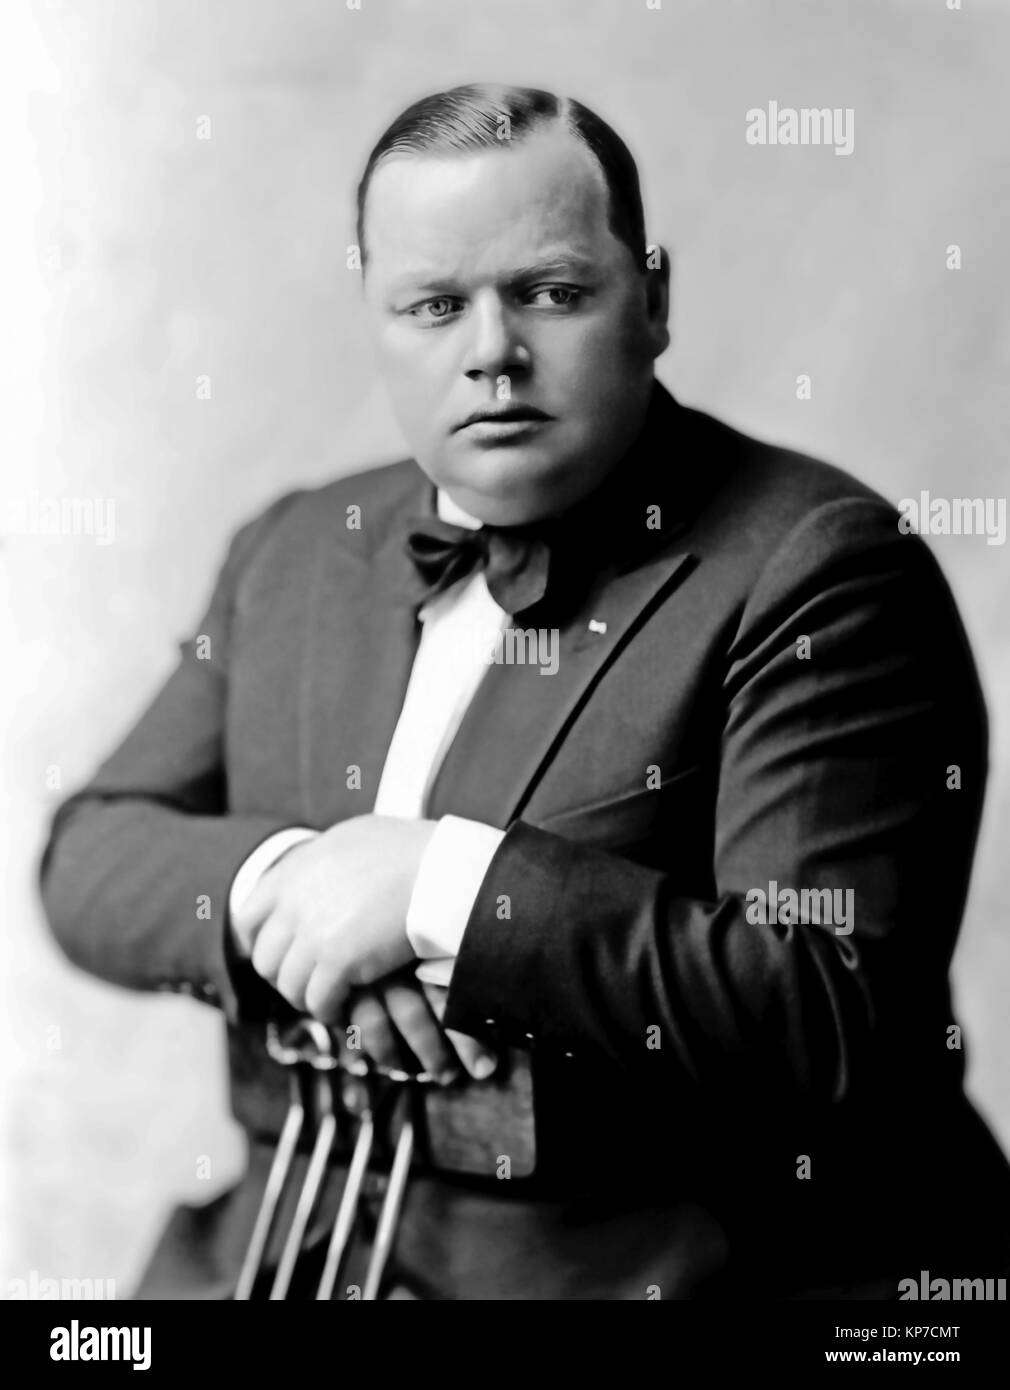 ROSCOE 'FATTY' ARBUCKLE (1887-1933) American film actor and director about 1916 - Stock Image